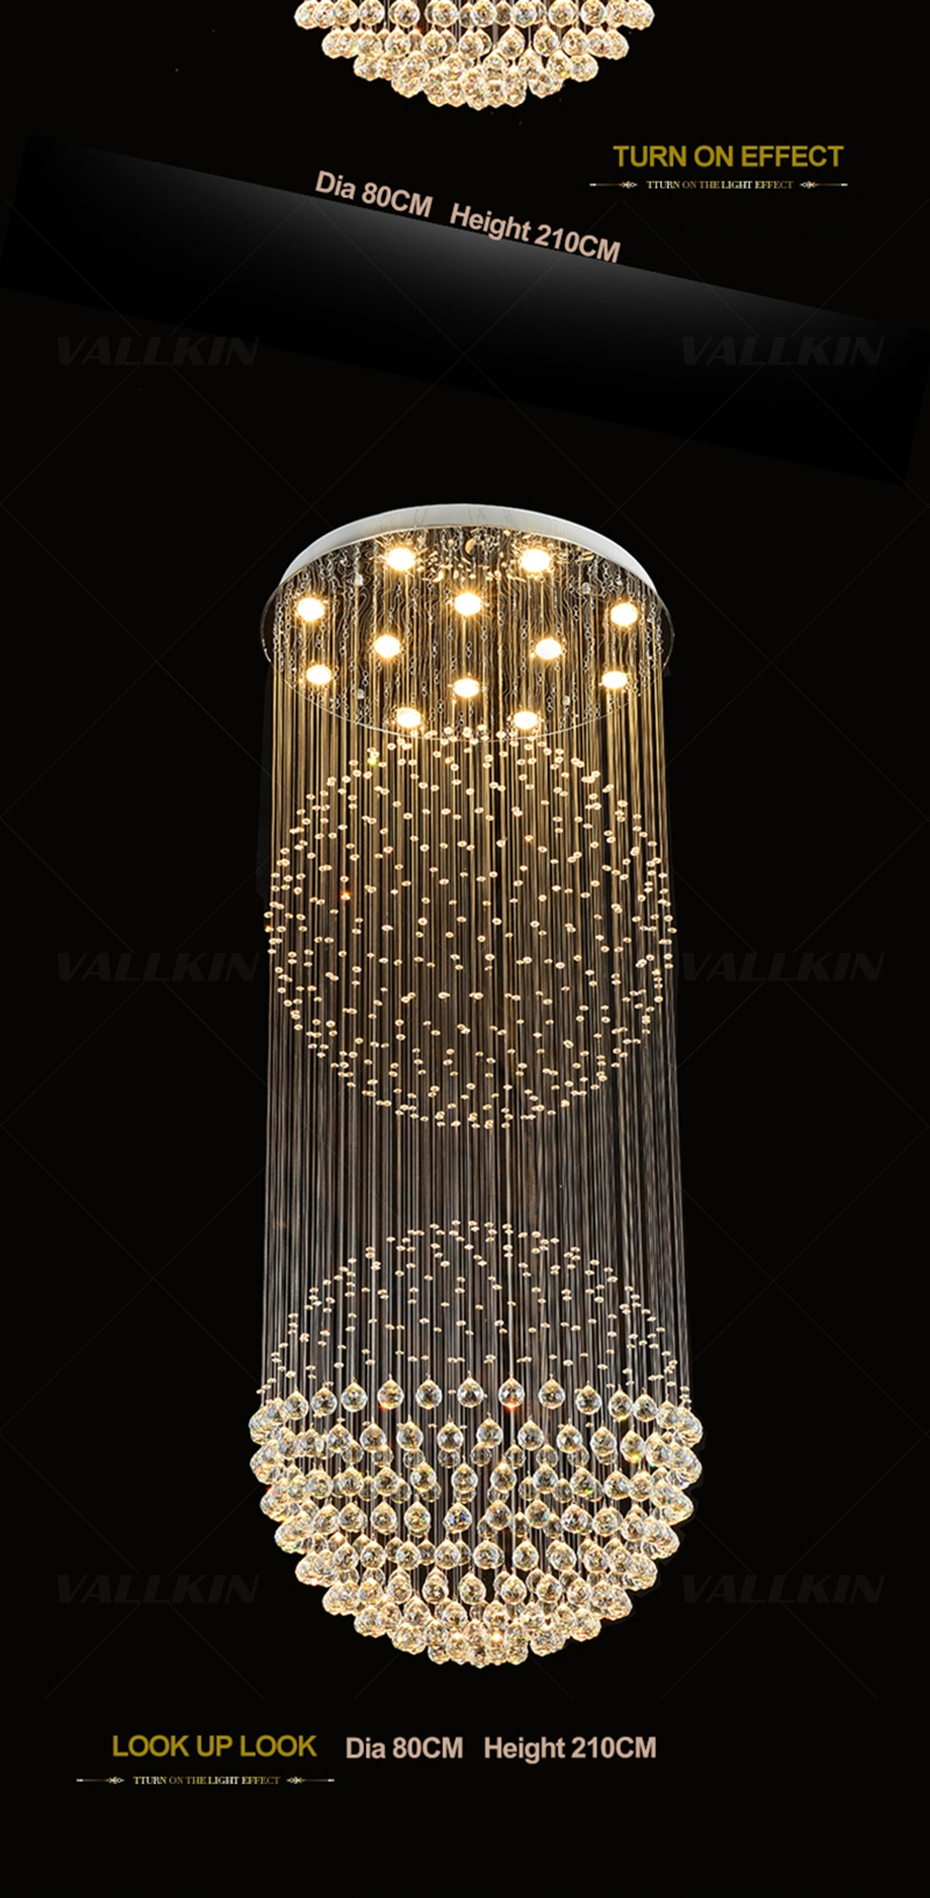 Suspension Chandelier Us 412 85 49 Off Luxury Crystal Chandeliers Pendant Lamps Modern Suspension Chandelier Lamp Lustres De Cristal For Hote Hallway Stairs Decoration In